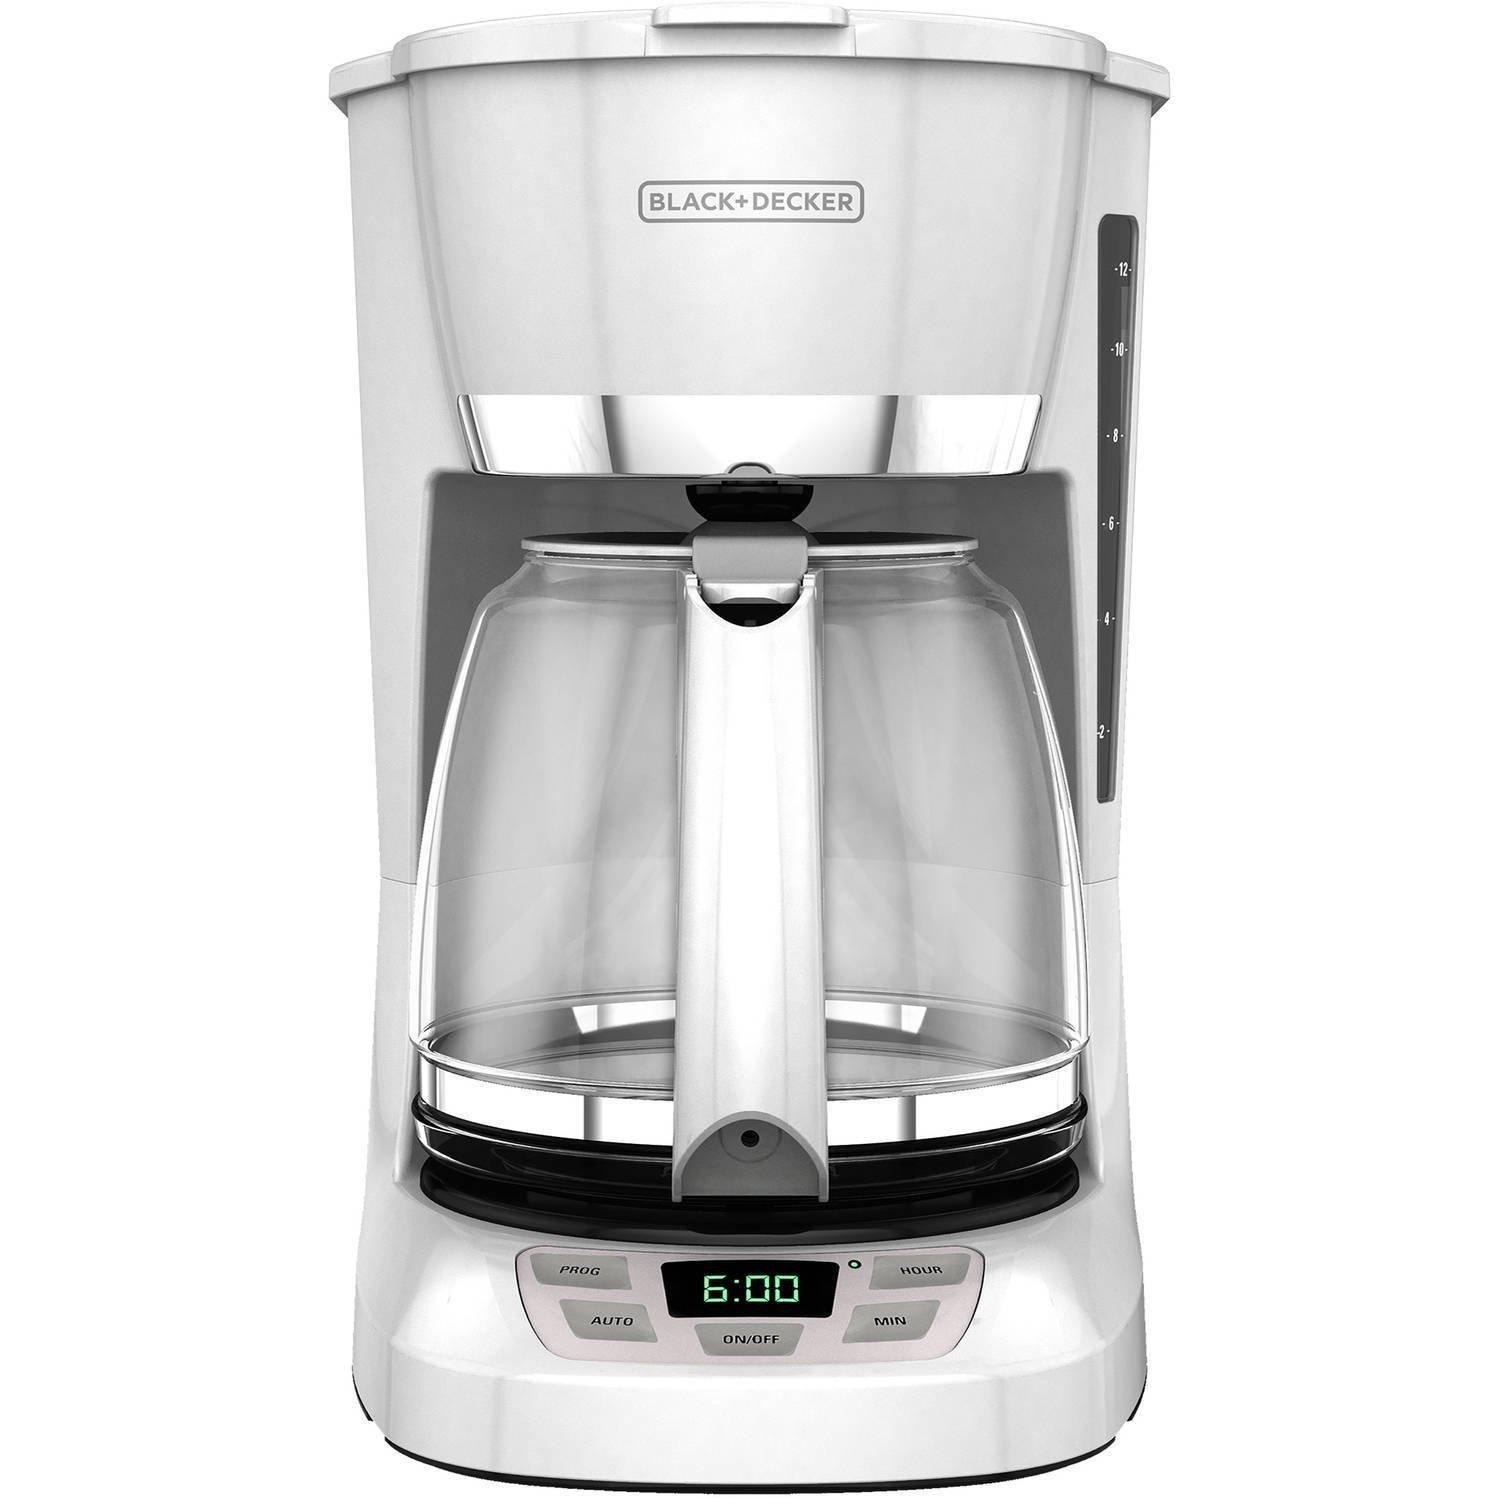 Black and decker 12 cup programmable - New Black Decker 12 Cup Programmable Coffee Maker Quick Touch White